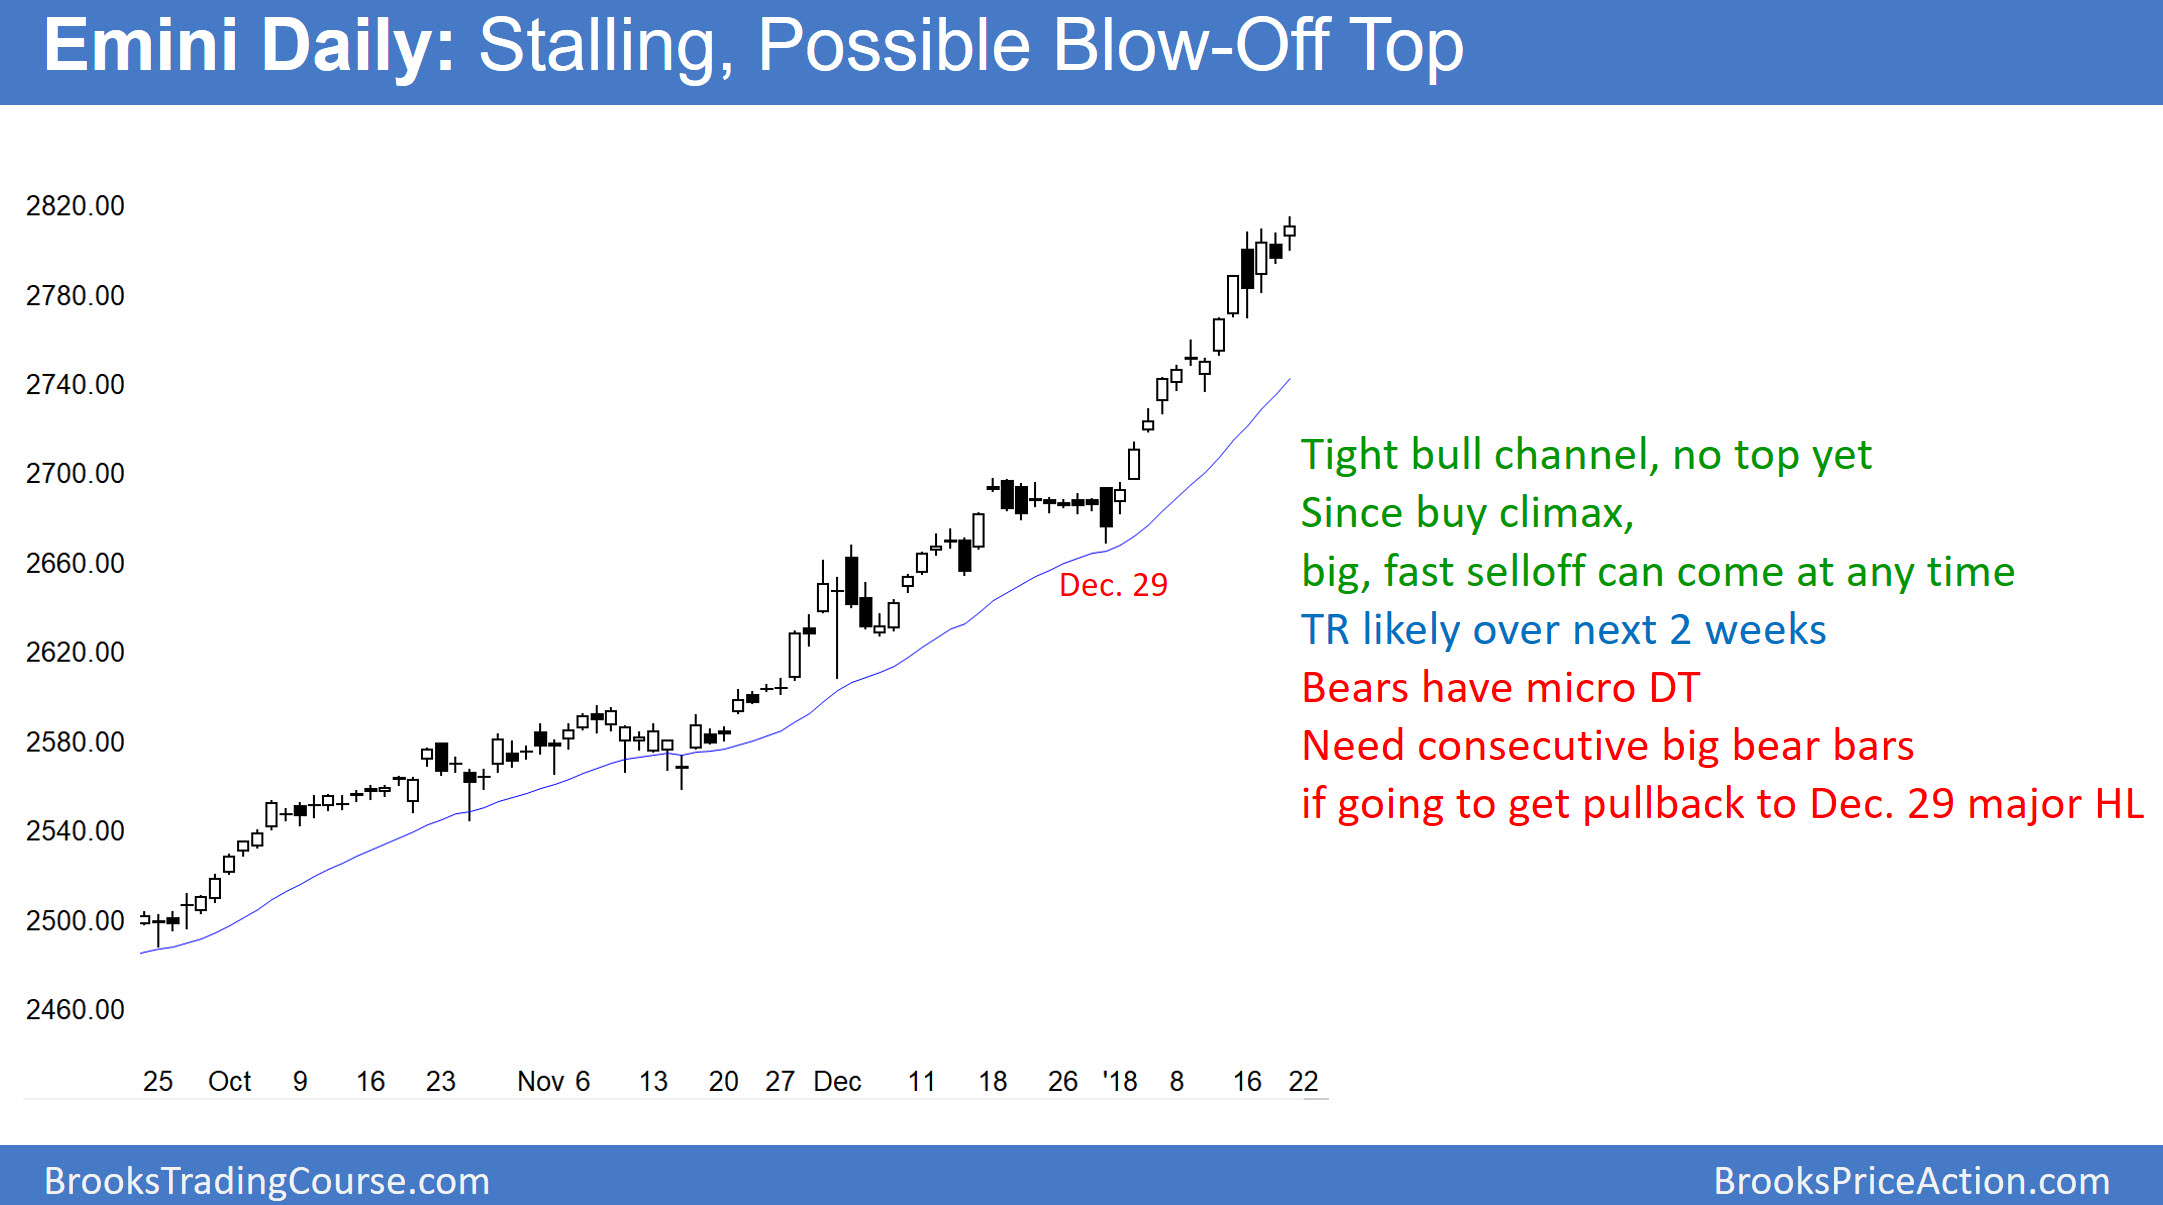 Emini blowoff top before government shutdown vote